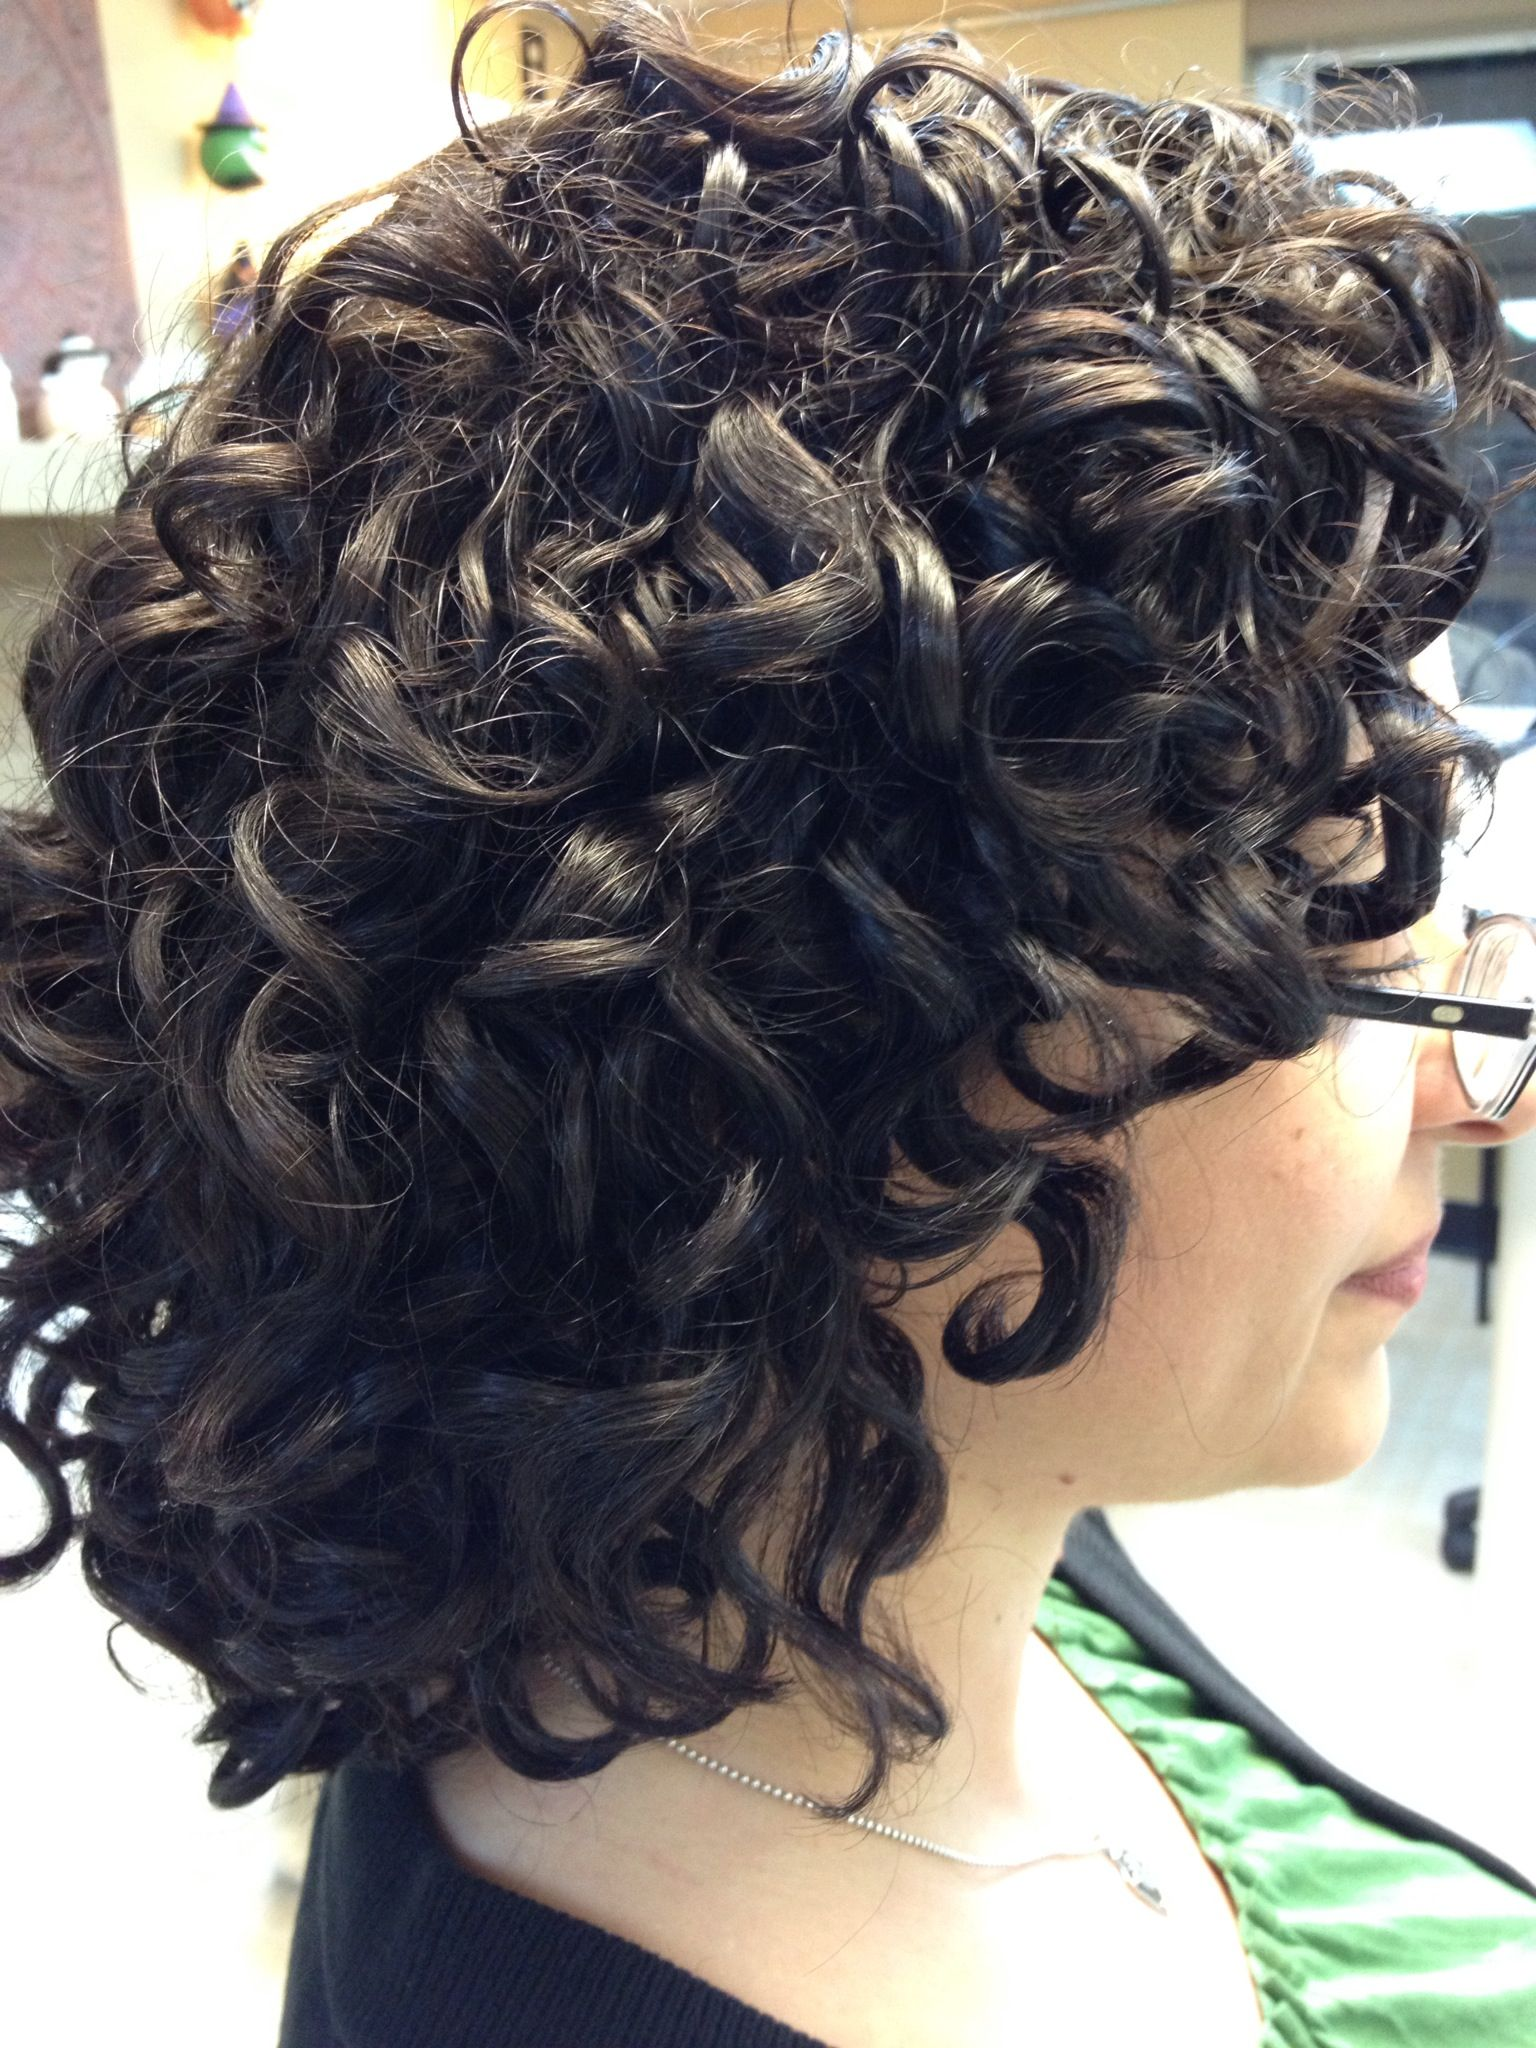 Devacurl Hair Cuts And The Full Line Of Devacurl Products At Kelly